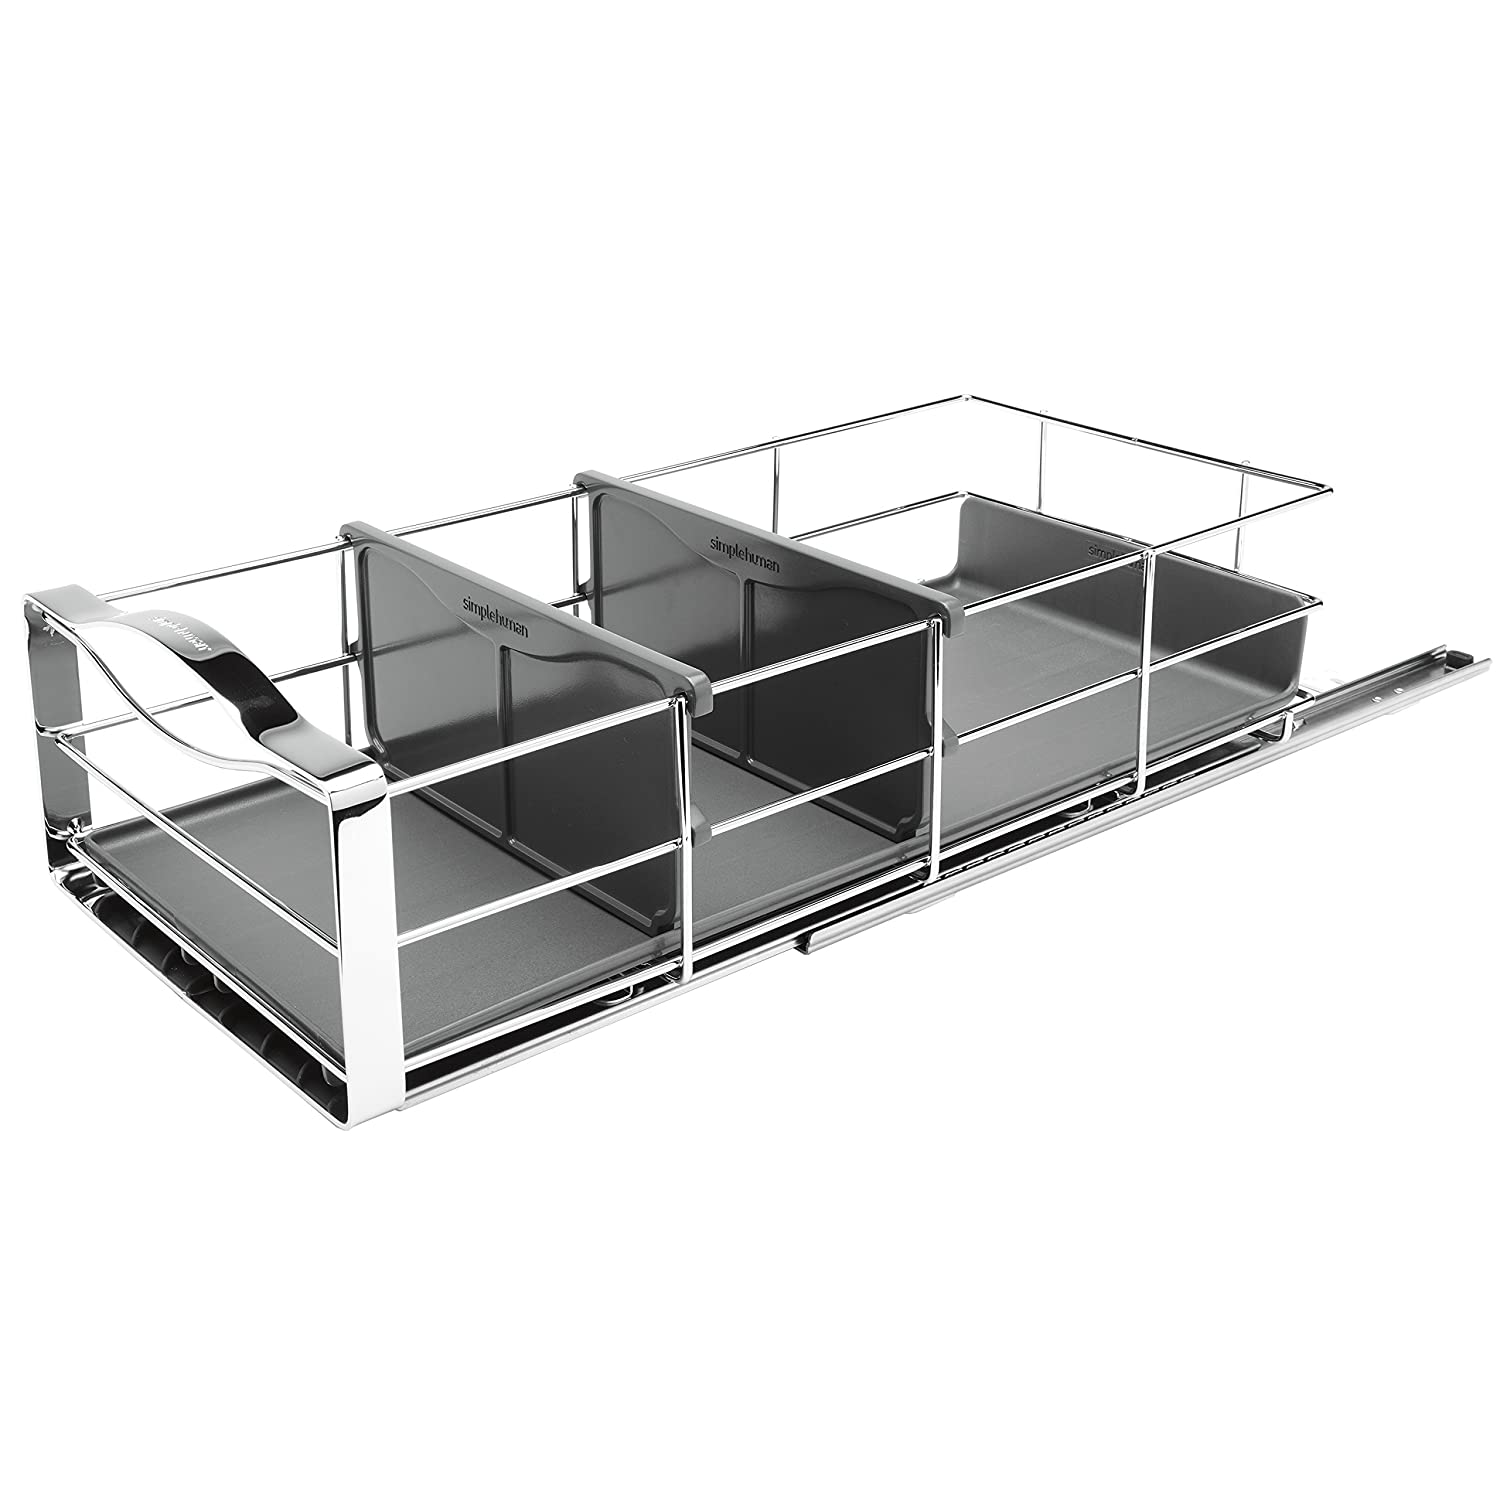 Amazon.com: simplehuman 9 inch Pull-Out Cabinet Organizer, Heavy ...